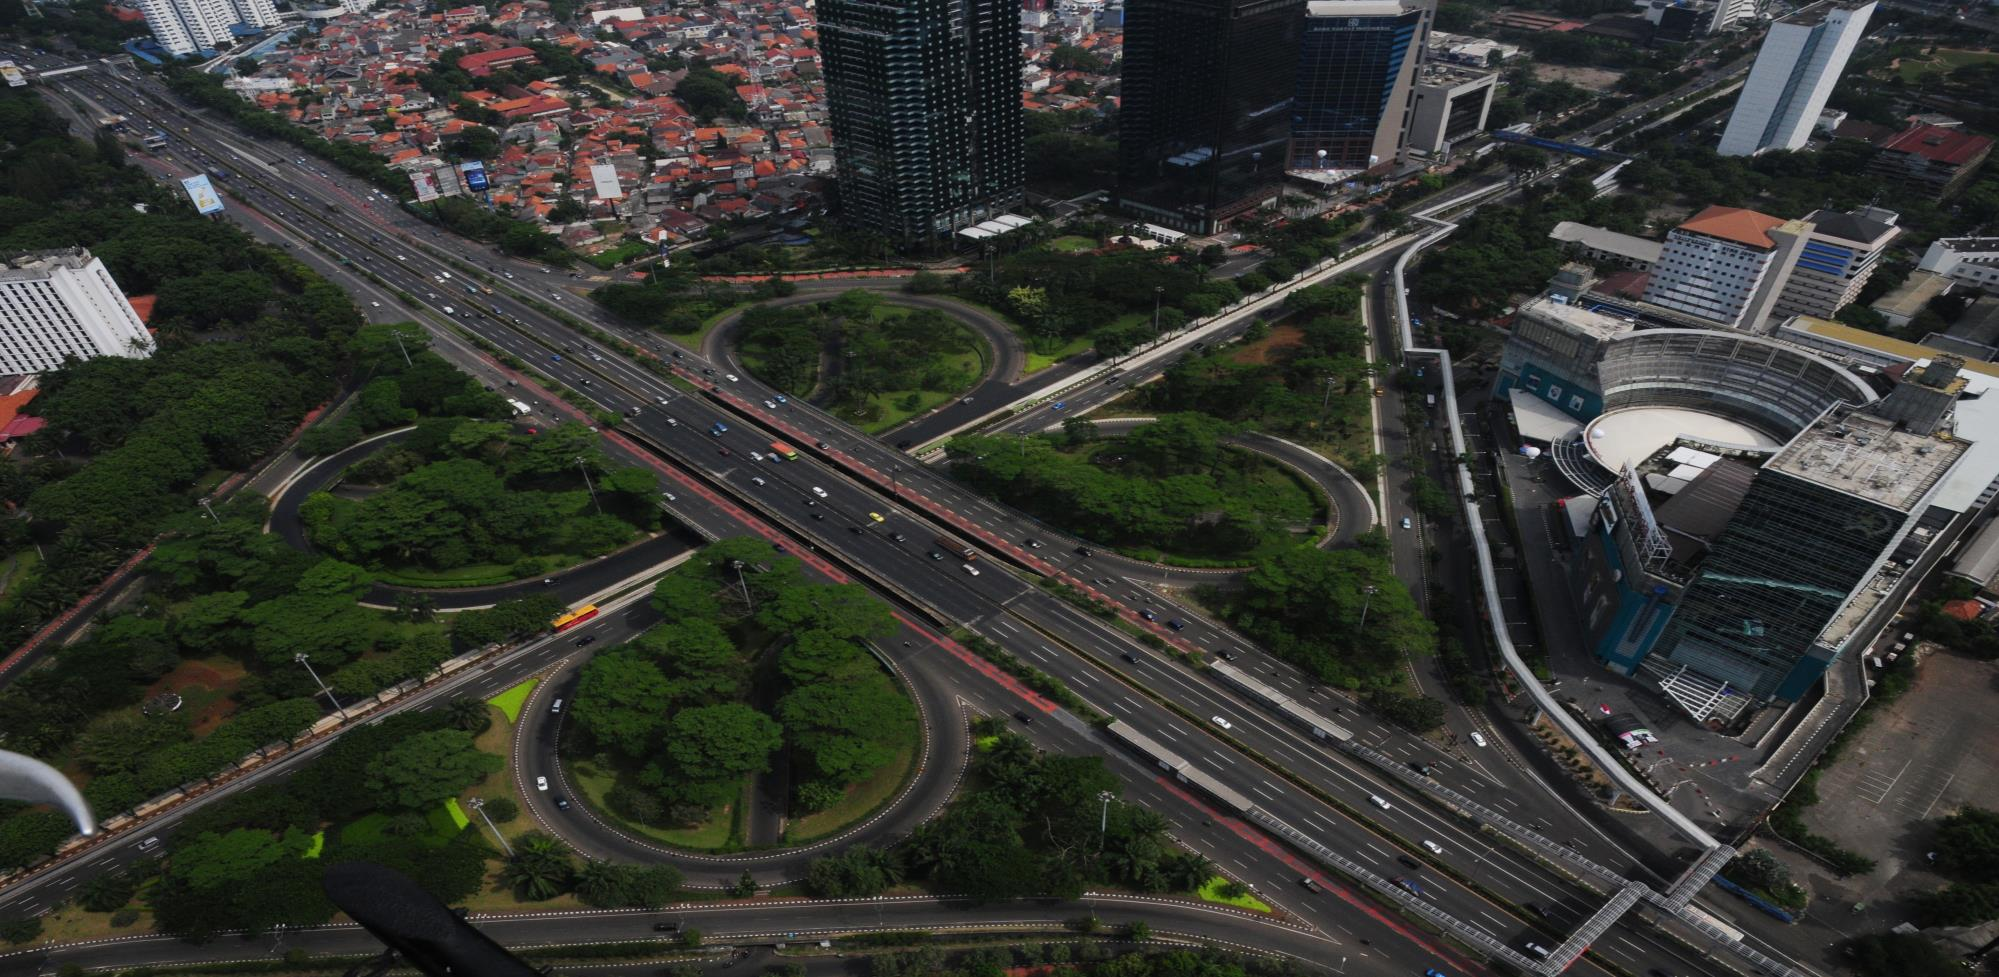 TOLL ROAD RECENT DEVELOPMENT IN INDONESIA EKA PRIA ANAS BOARD MEMBER, INDONESIA